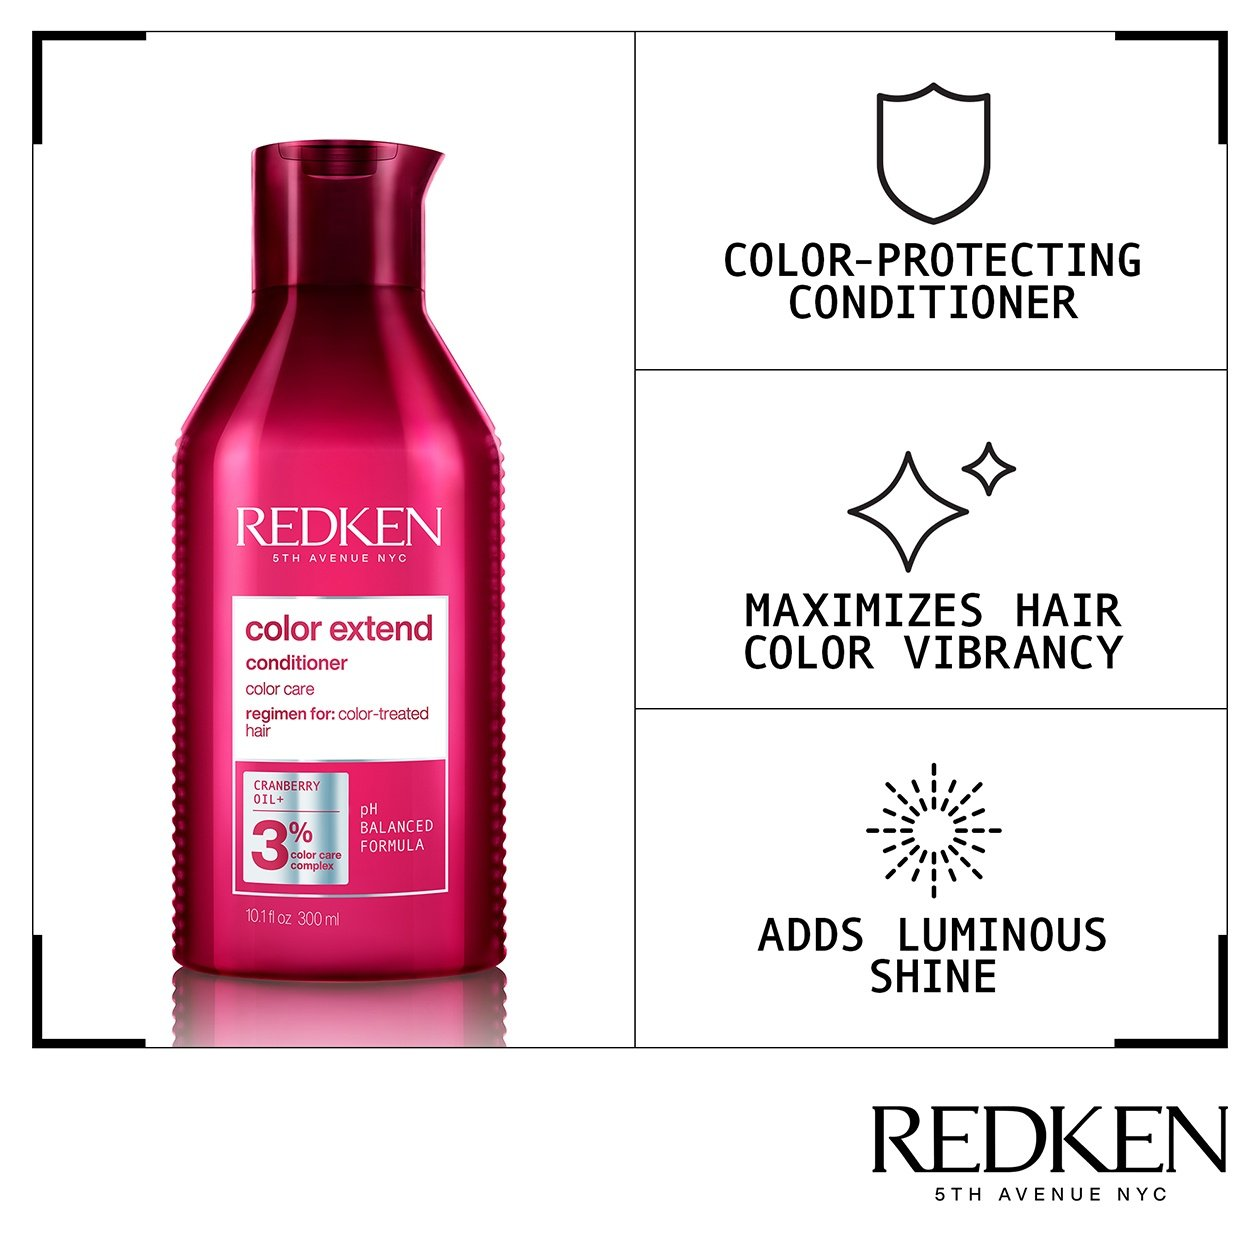 Redken-2020-Color-Extend-Conditioner-Benefits-Template